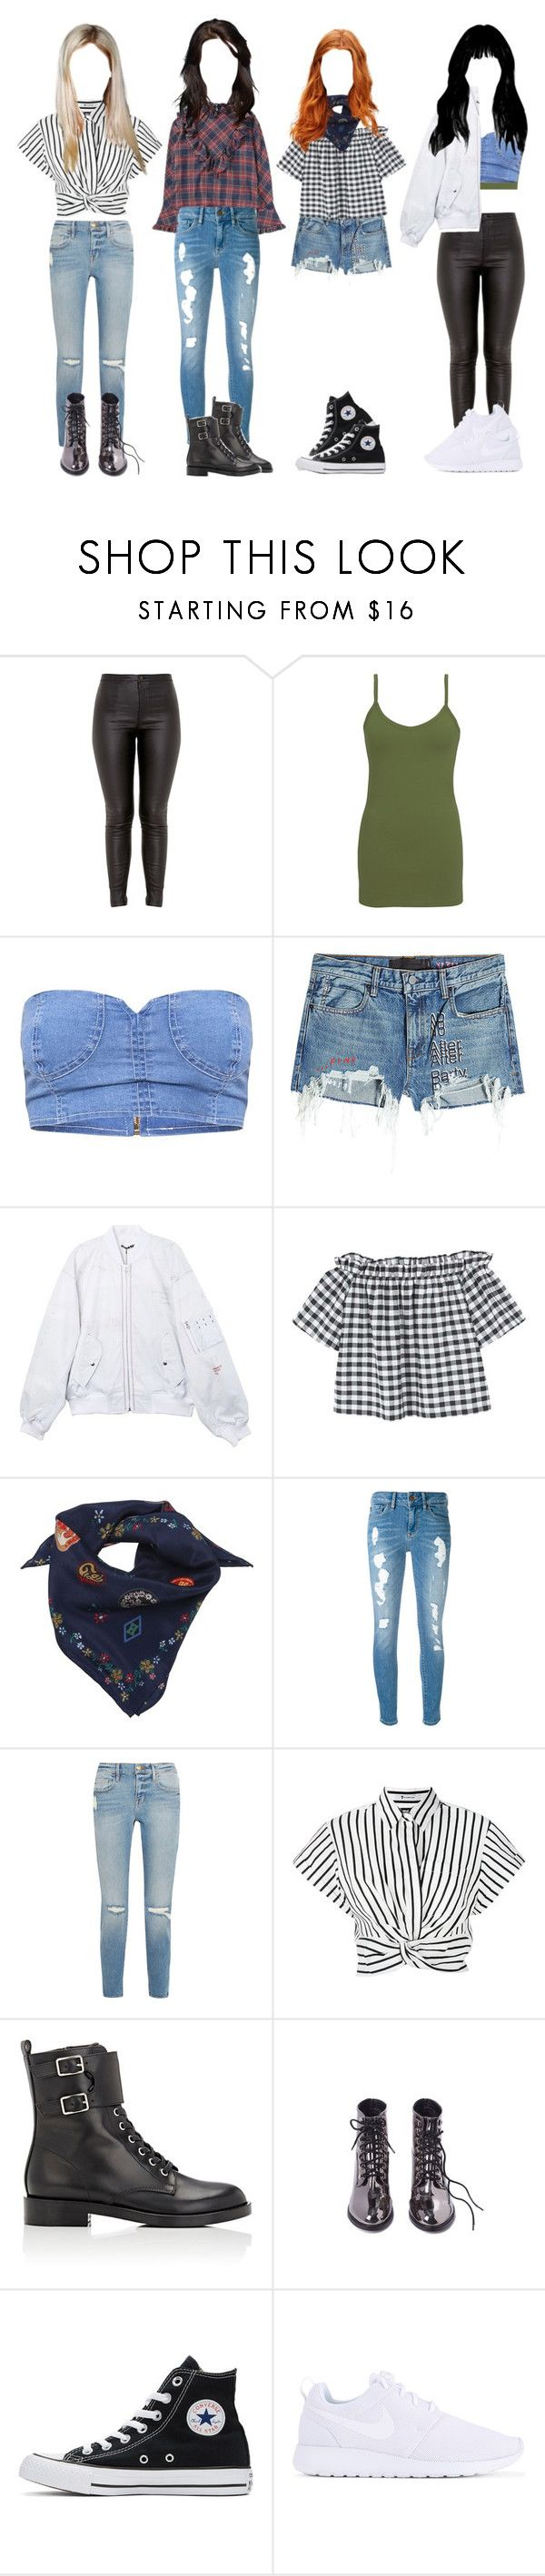 """Hometown Heroes EP.10: Suwon, Korea(Navigation Challenge Pt.2)"" by epilxgue ❤ liked on Polyvore featuring BKE core, T By Alexander Wang, MANGO, Tommy Hilfiger, Frame, Gianvito Rossi, Converse and NIKE"